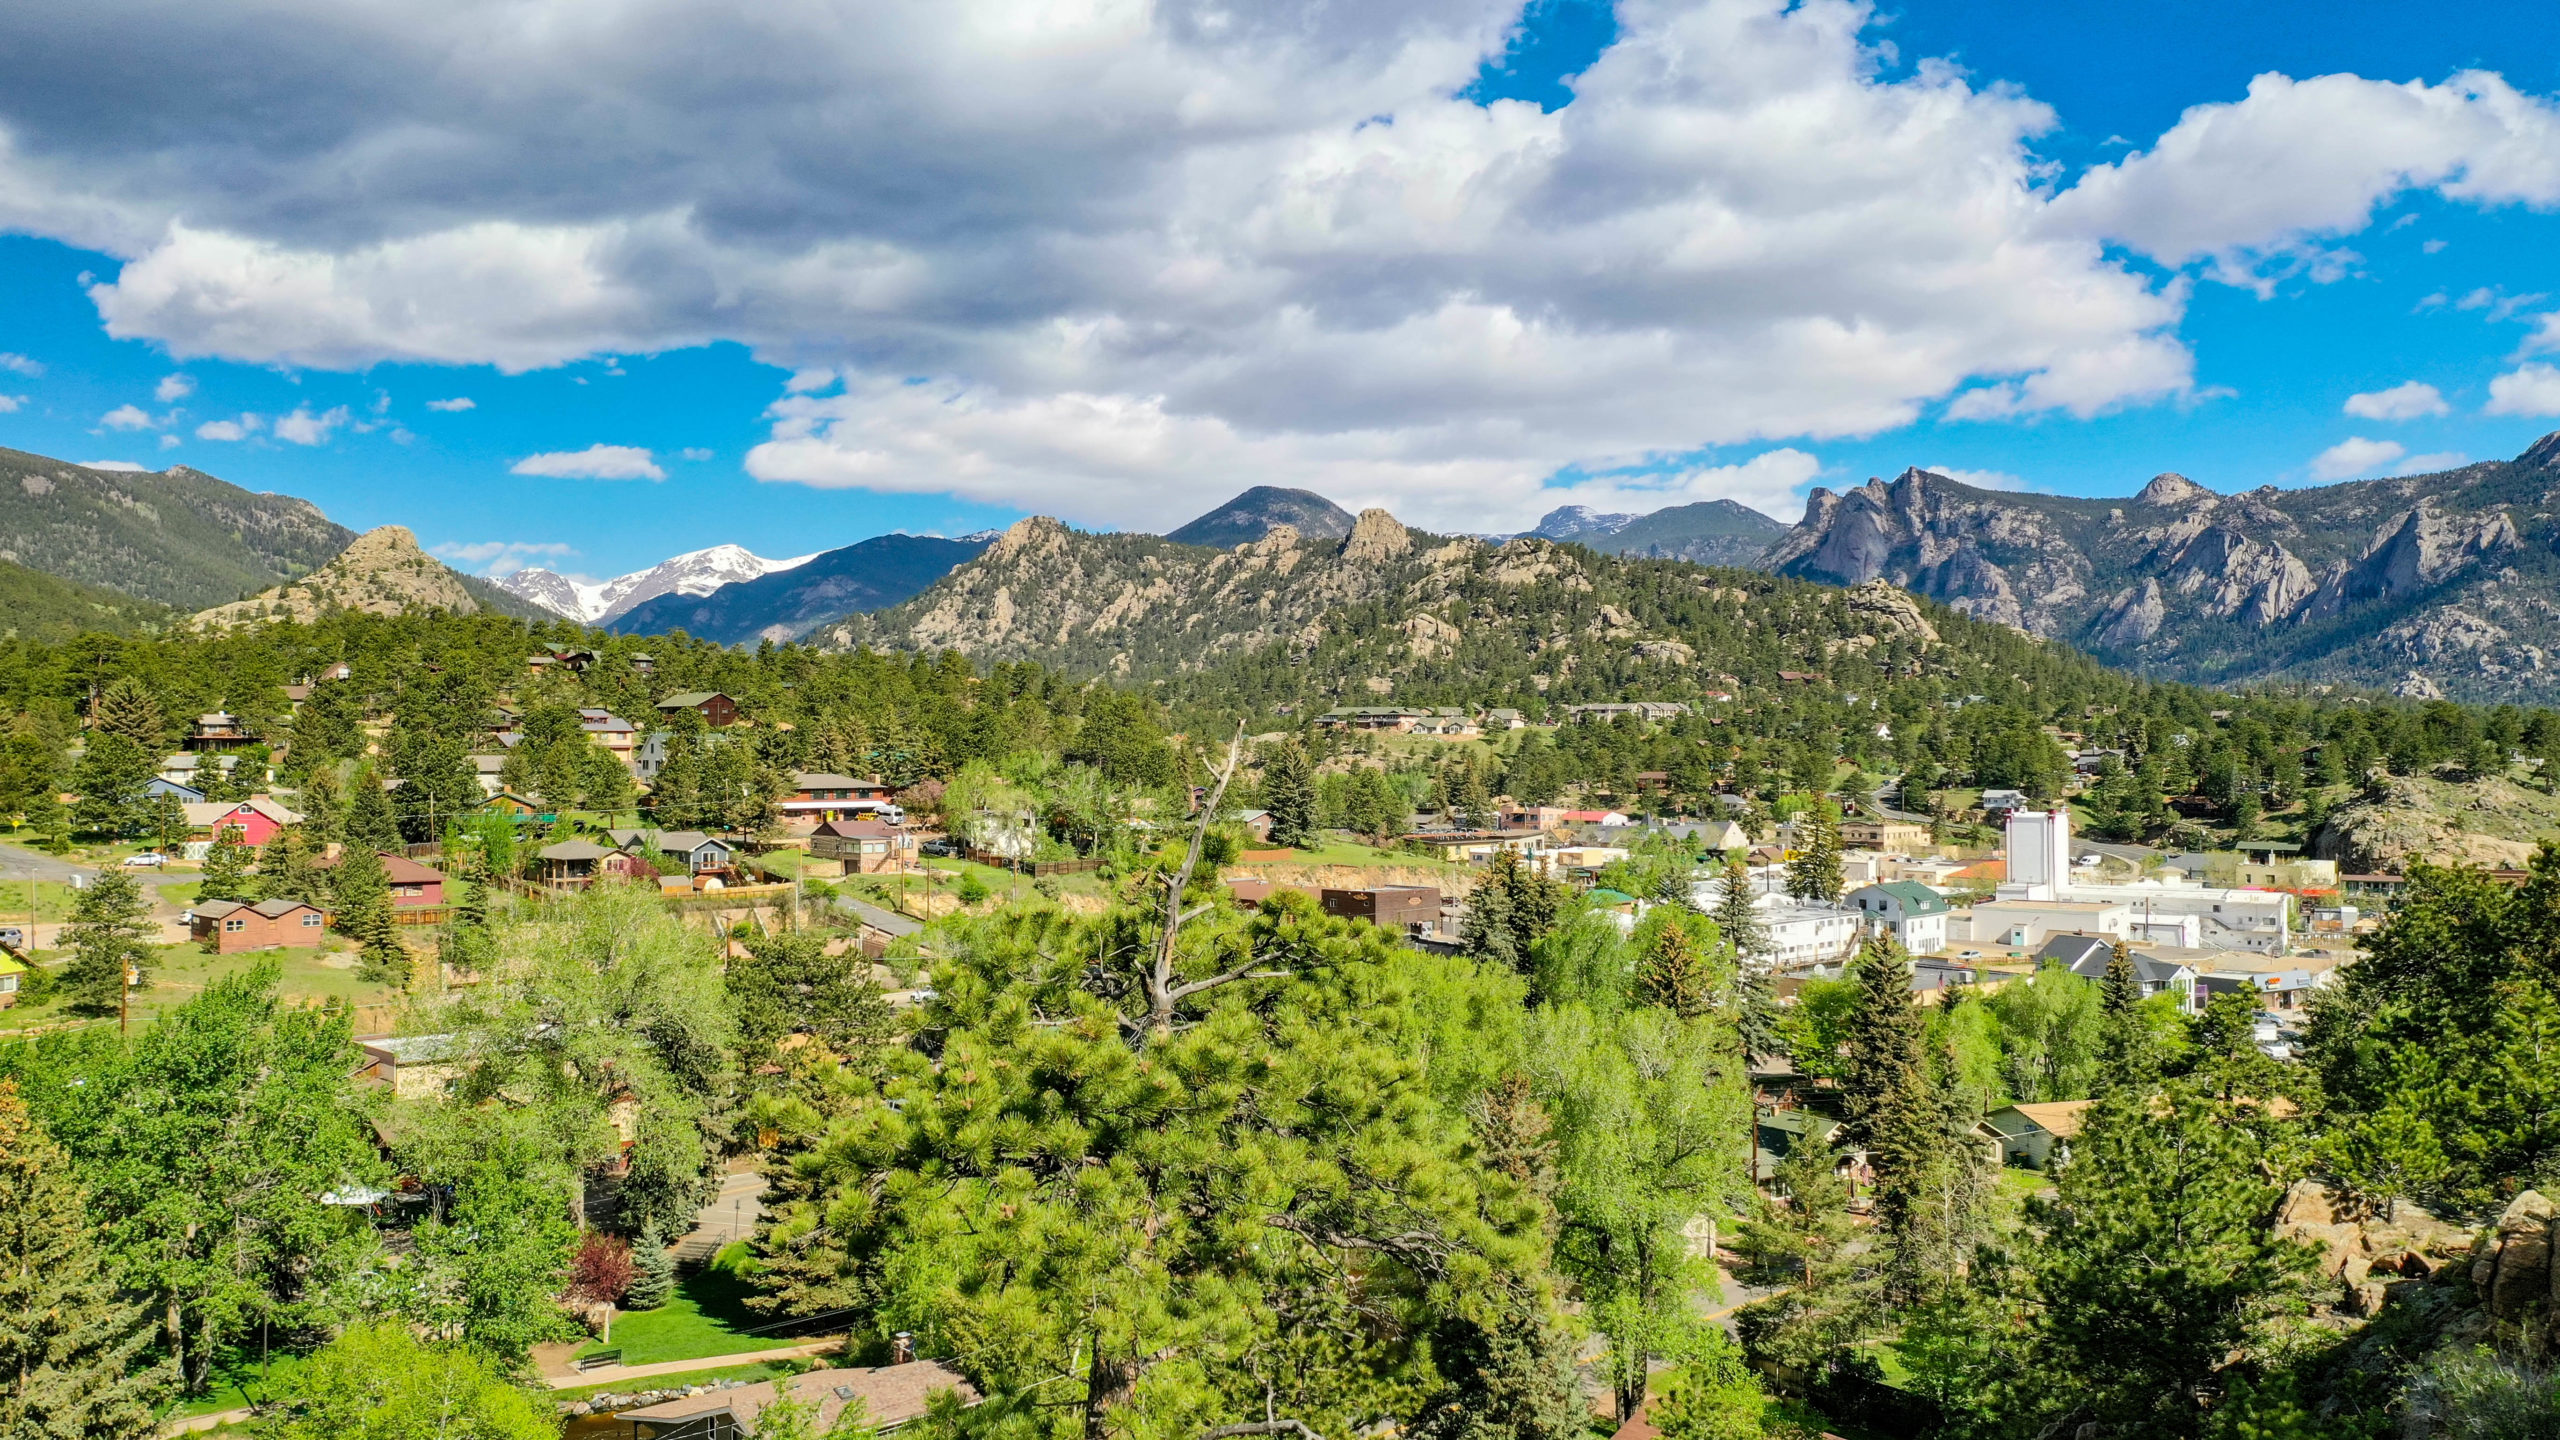 This is an image taken 100' above Redemption, Exploration and Reflection Cabins pointing northwest over Baldwin Park up Fall River into Endo Valley of the Rocky Mountain National Park. The right side of the image points north over downtown Estes Park to Lumpy Ridge large in the background.